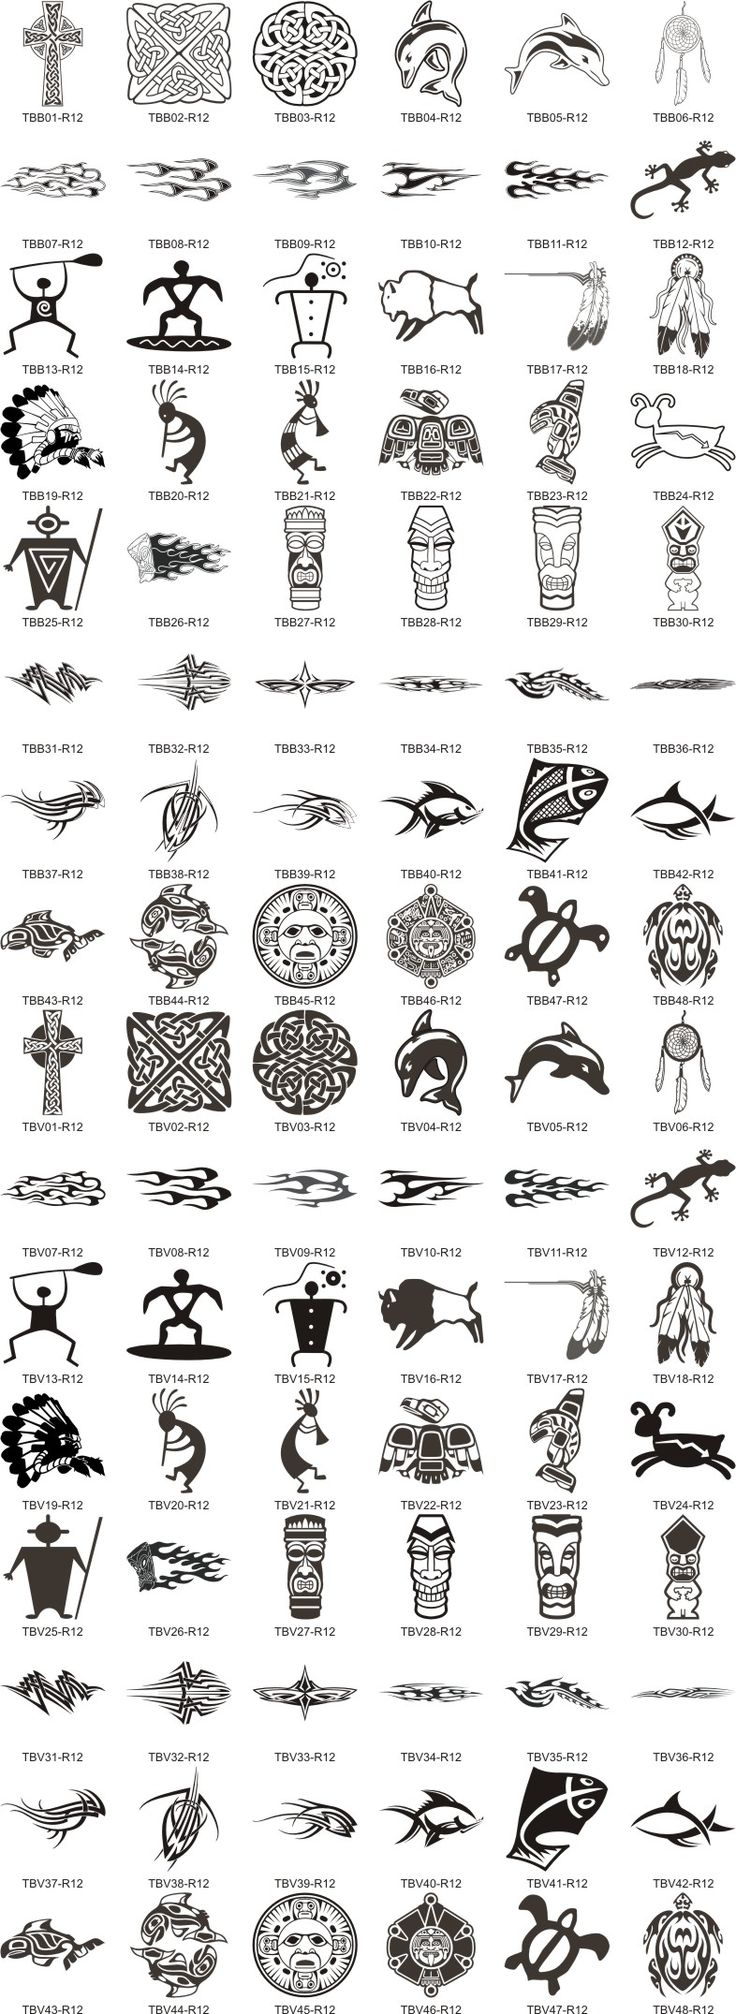 Polynesia clipart symbol meaning And images Symbols 141 Pinterest